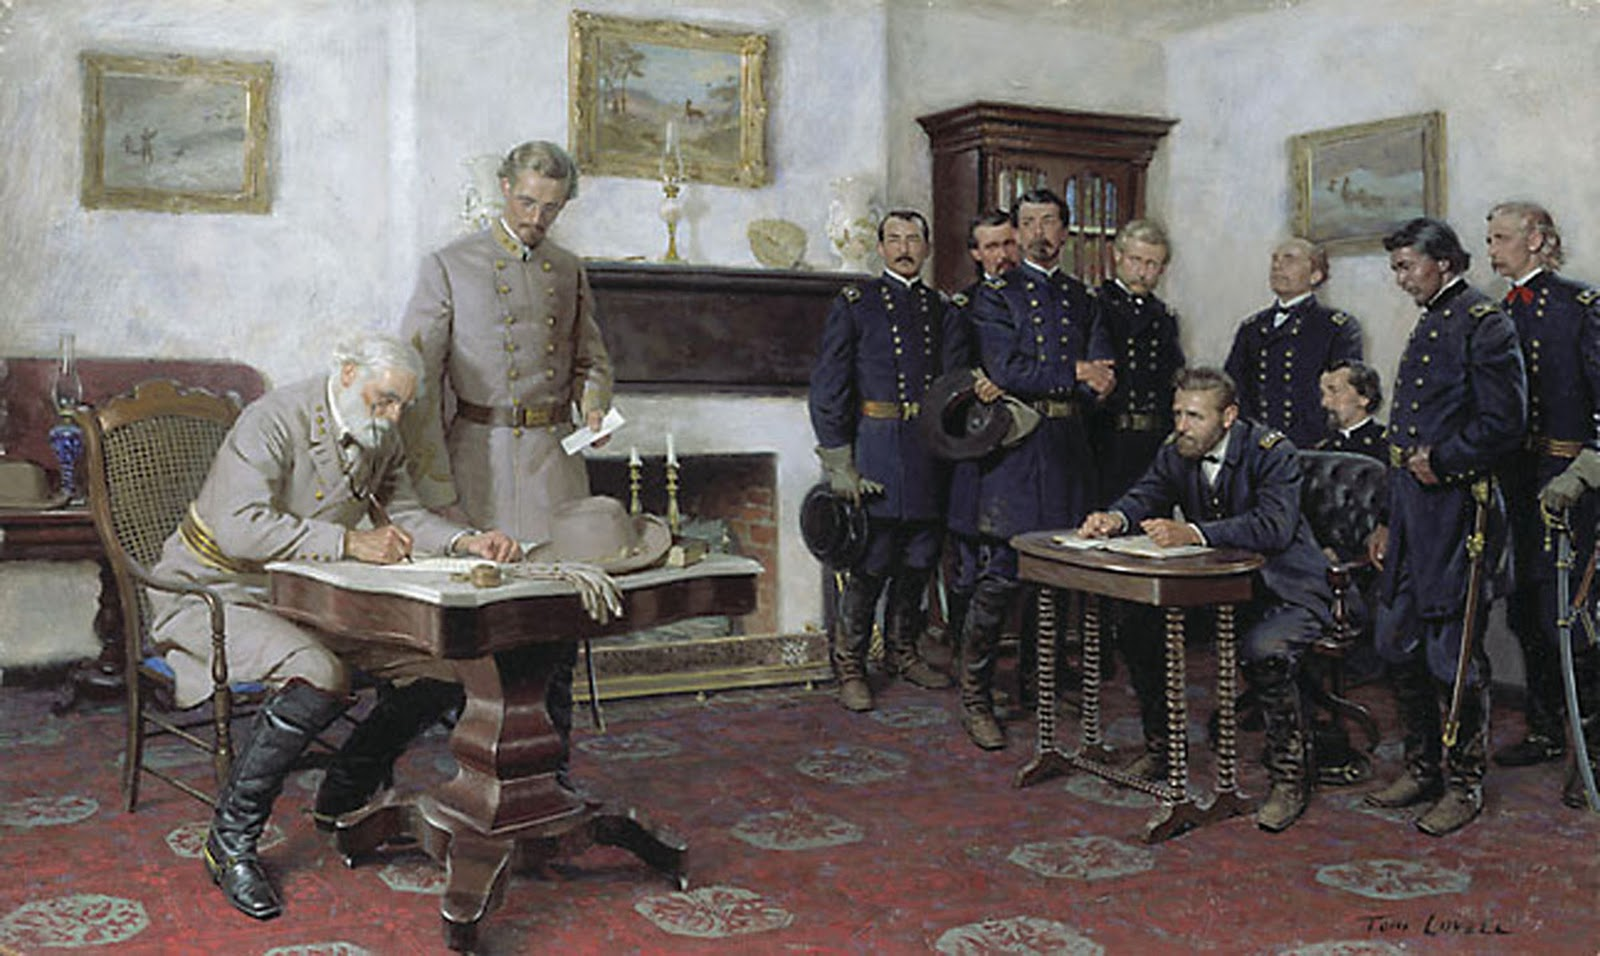 Robert E Lee Surrendering to US Grant at Appomattox 1865